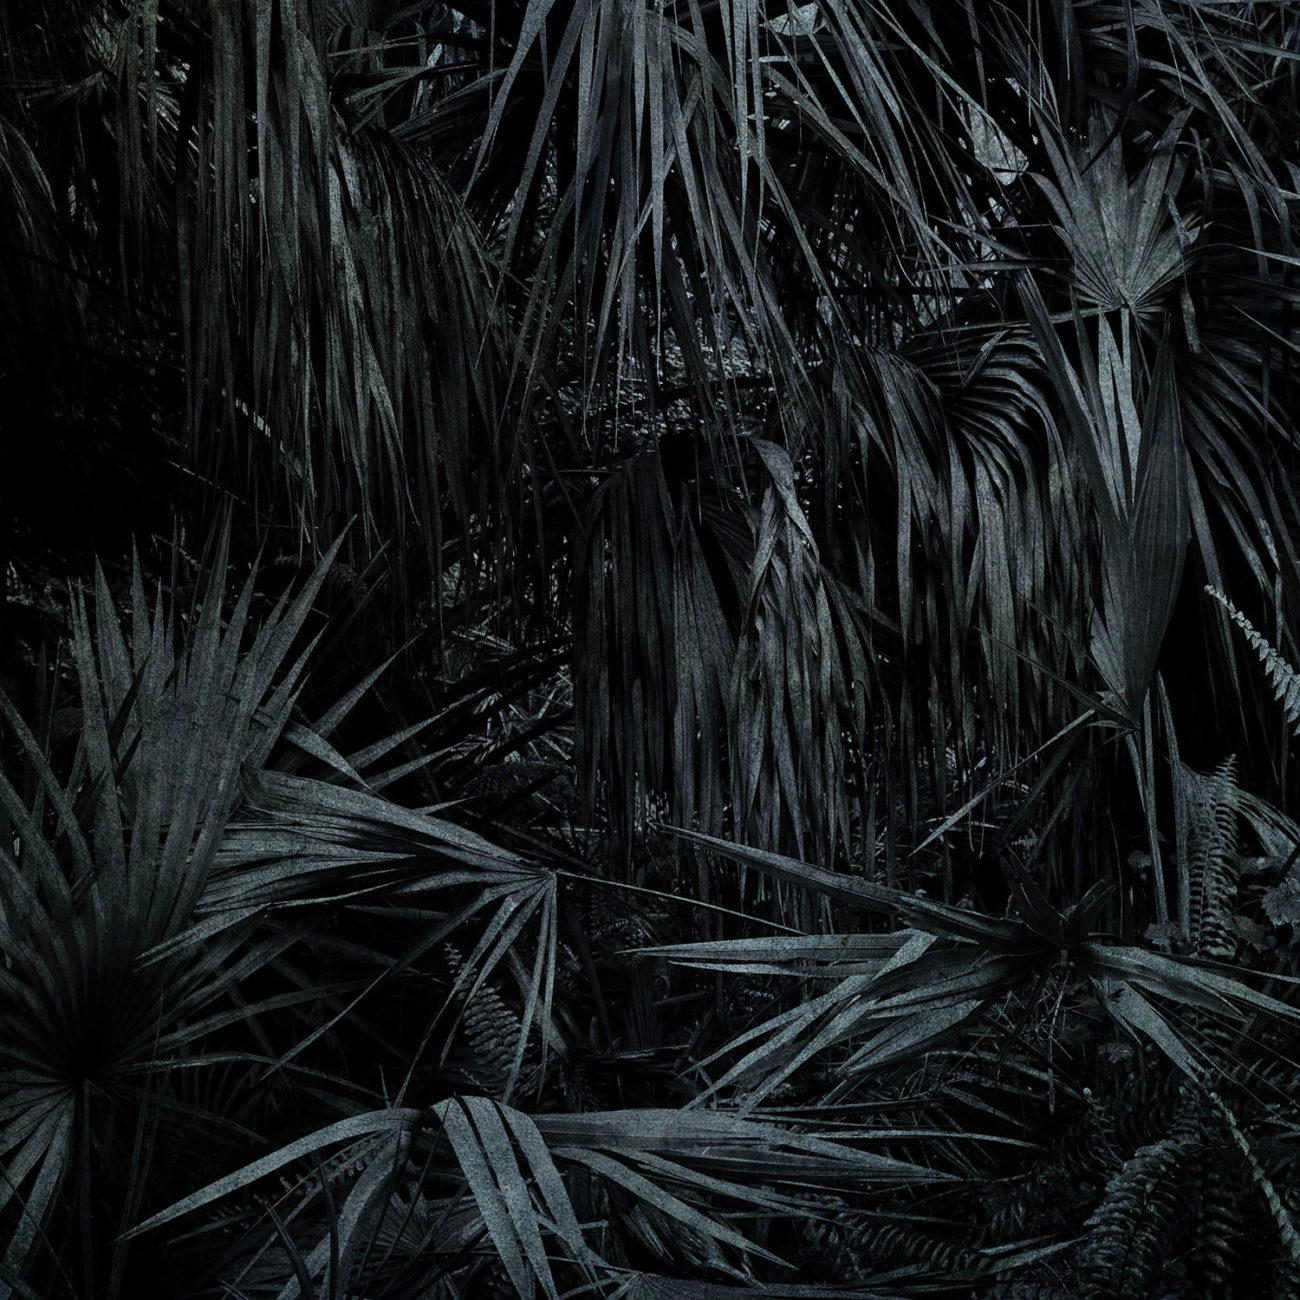 Sabal palms, Study in blue II, 2019